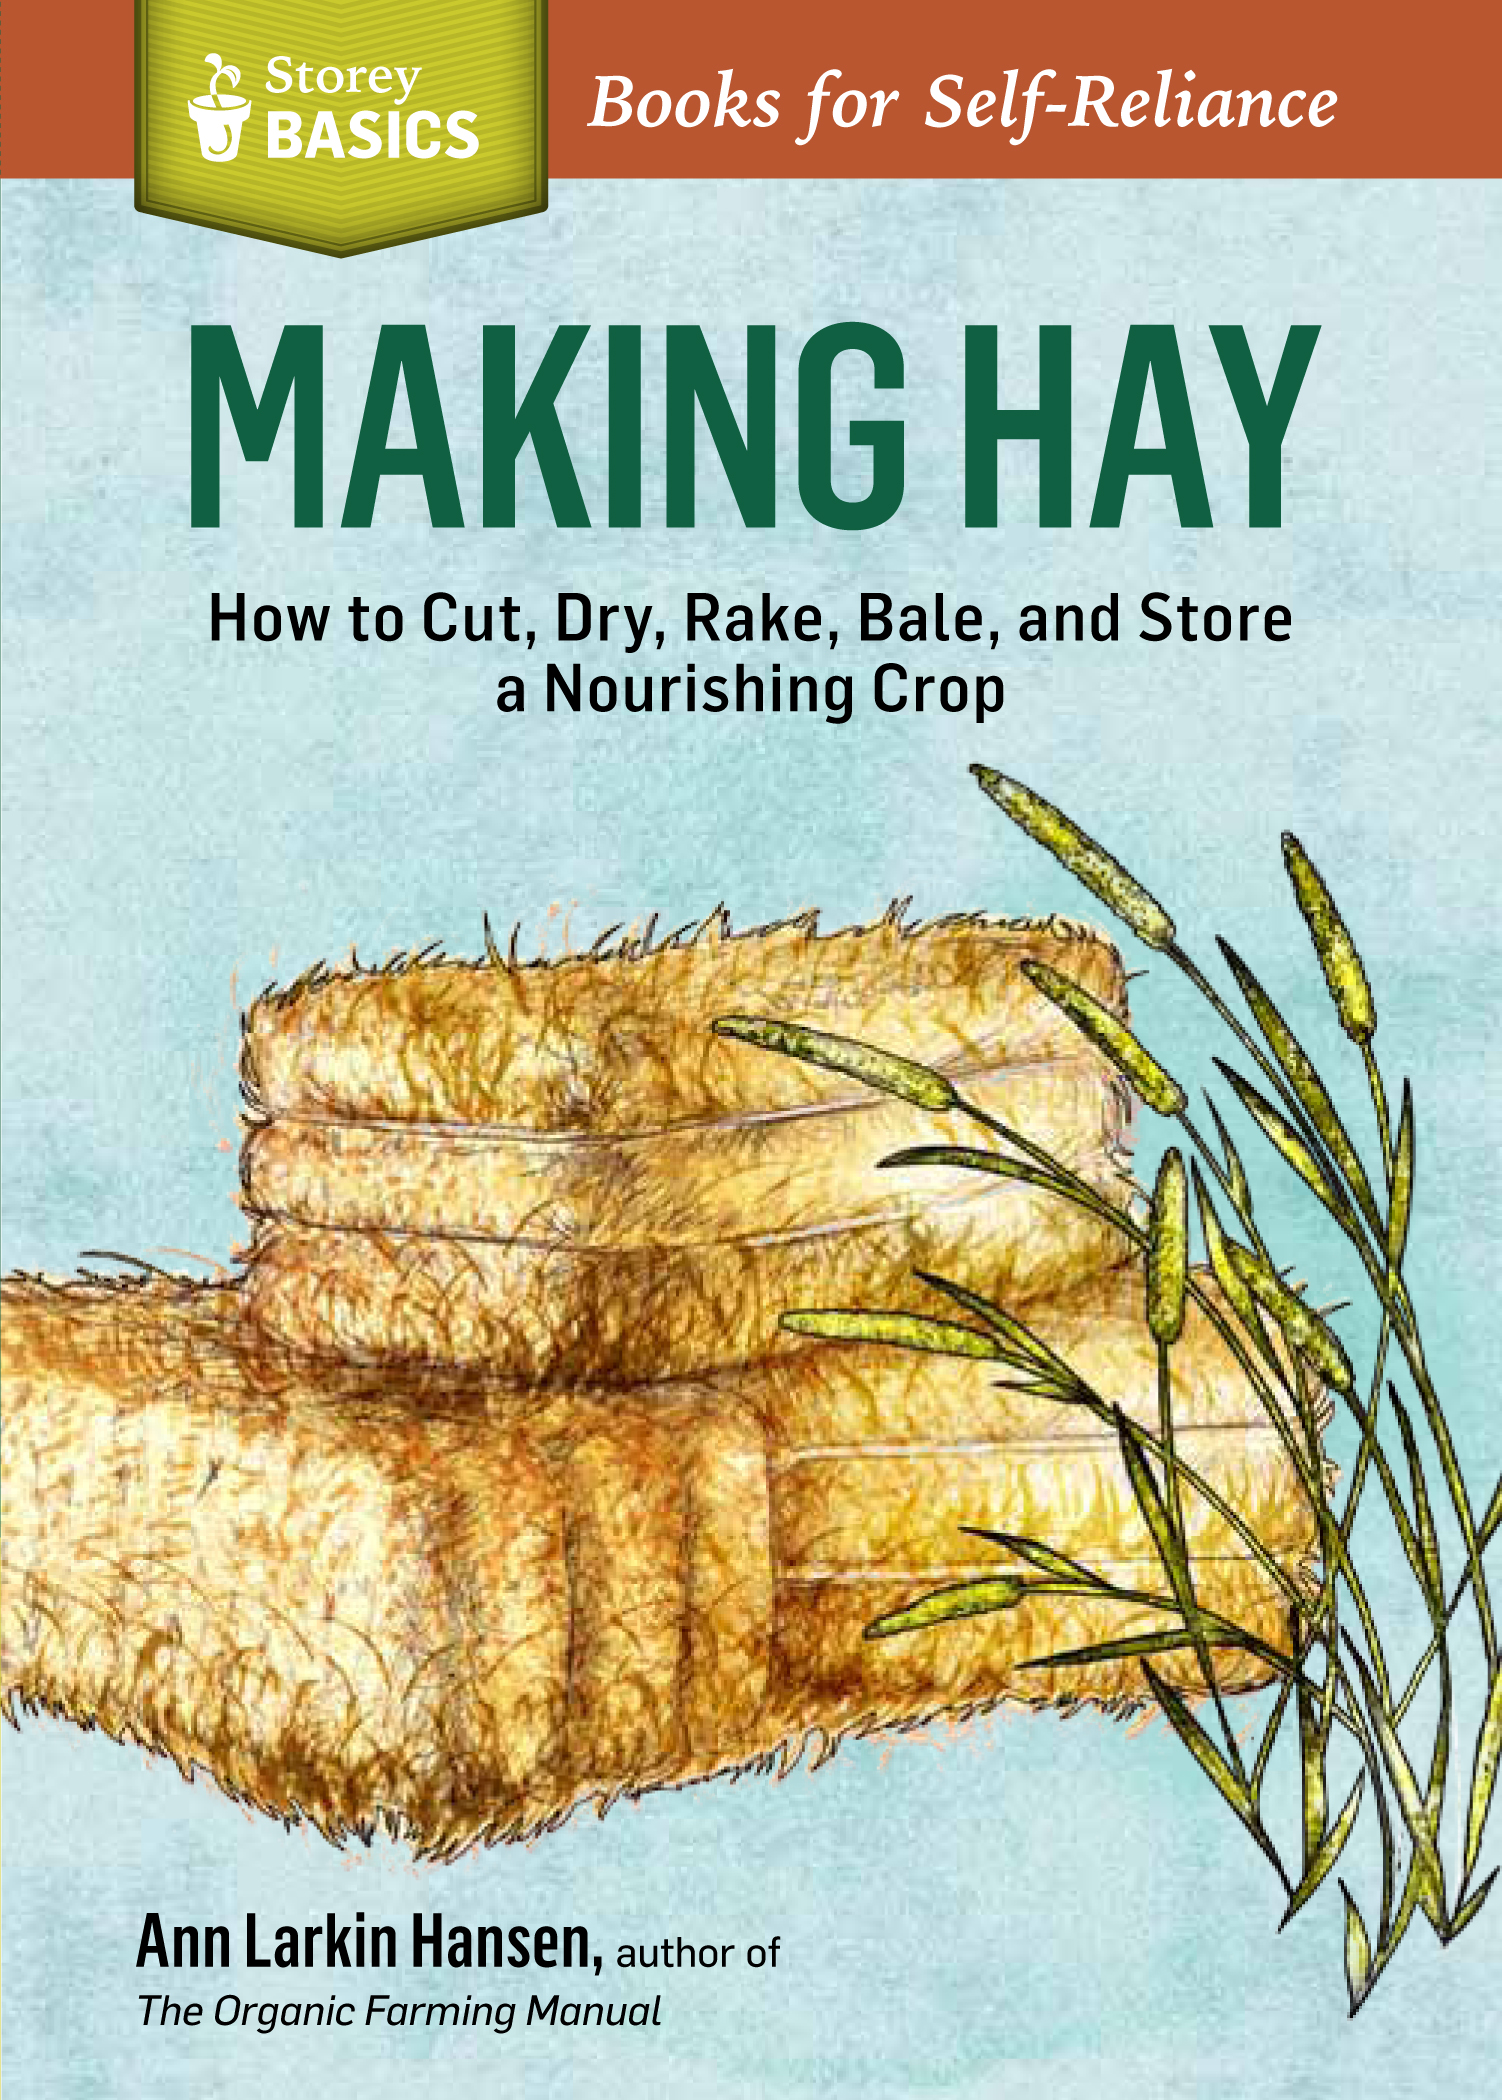 Making Hay How to Cut, Dry, Rake, Gather, and Store a Nourishing Crop. A Storey BASICS® Title - Ann Larkin Hansen